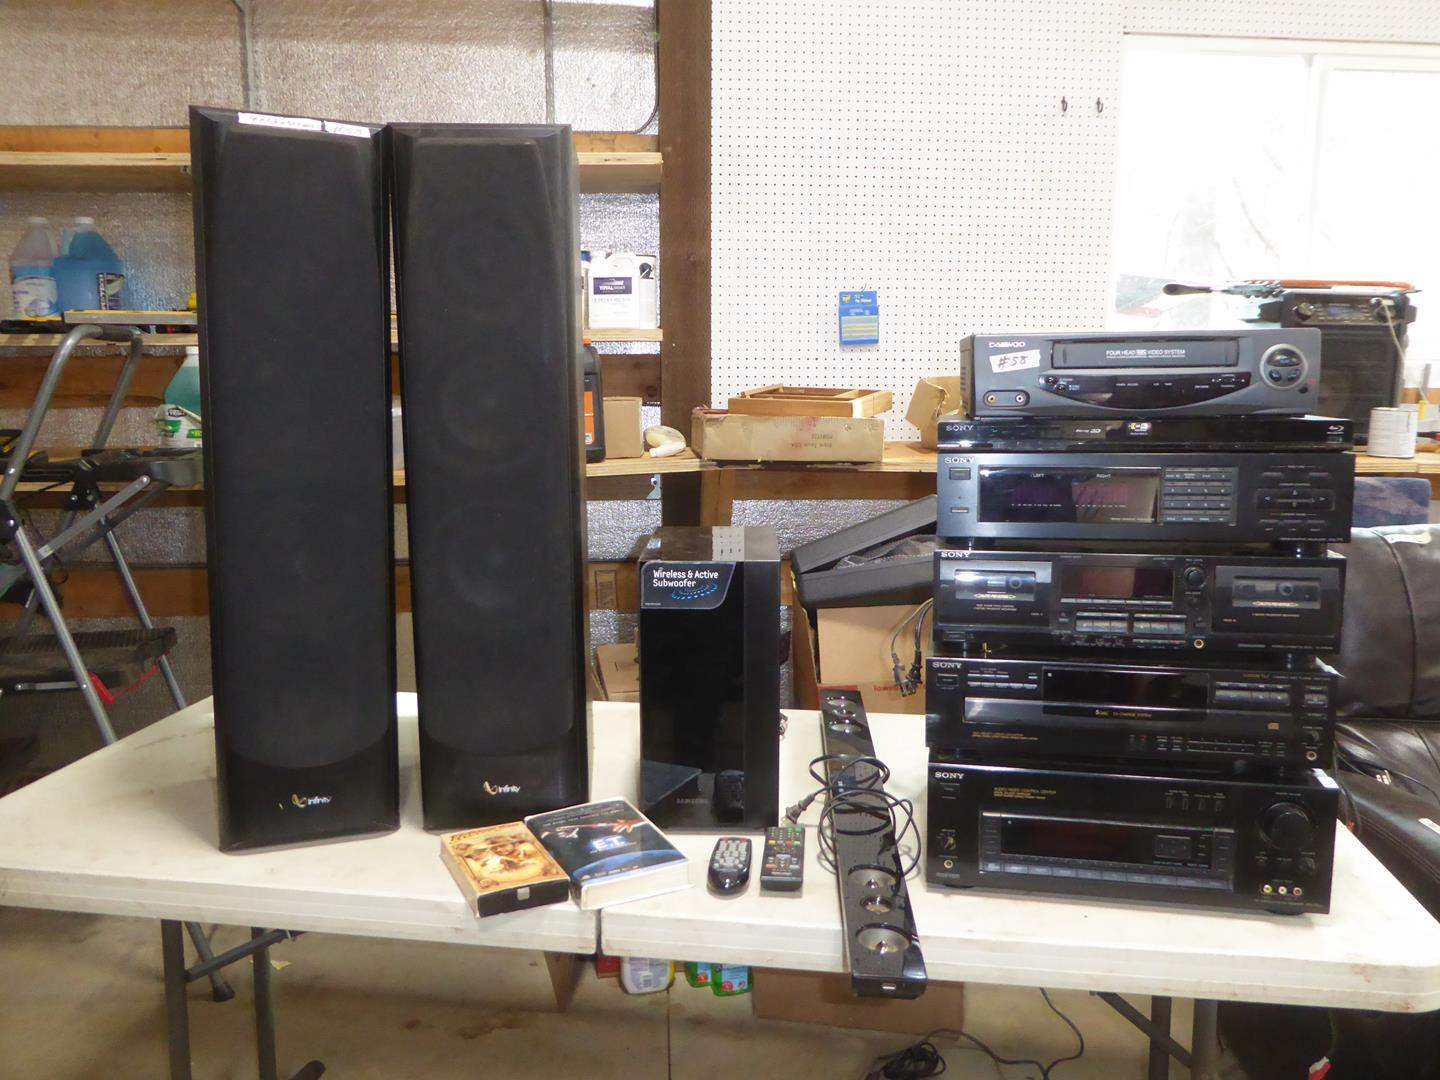 Lot # 58 - Daewoo VHS Player, Sony Blu-Ray Player, Sony Equalizer, Sony Receiver Cassette Deck, Subwoofer & Speakers